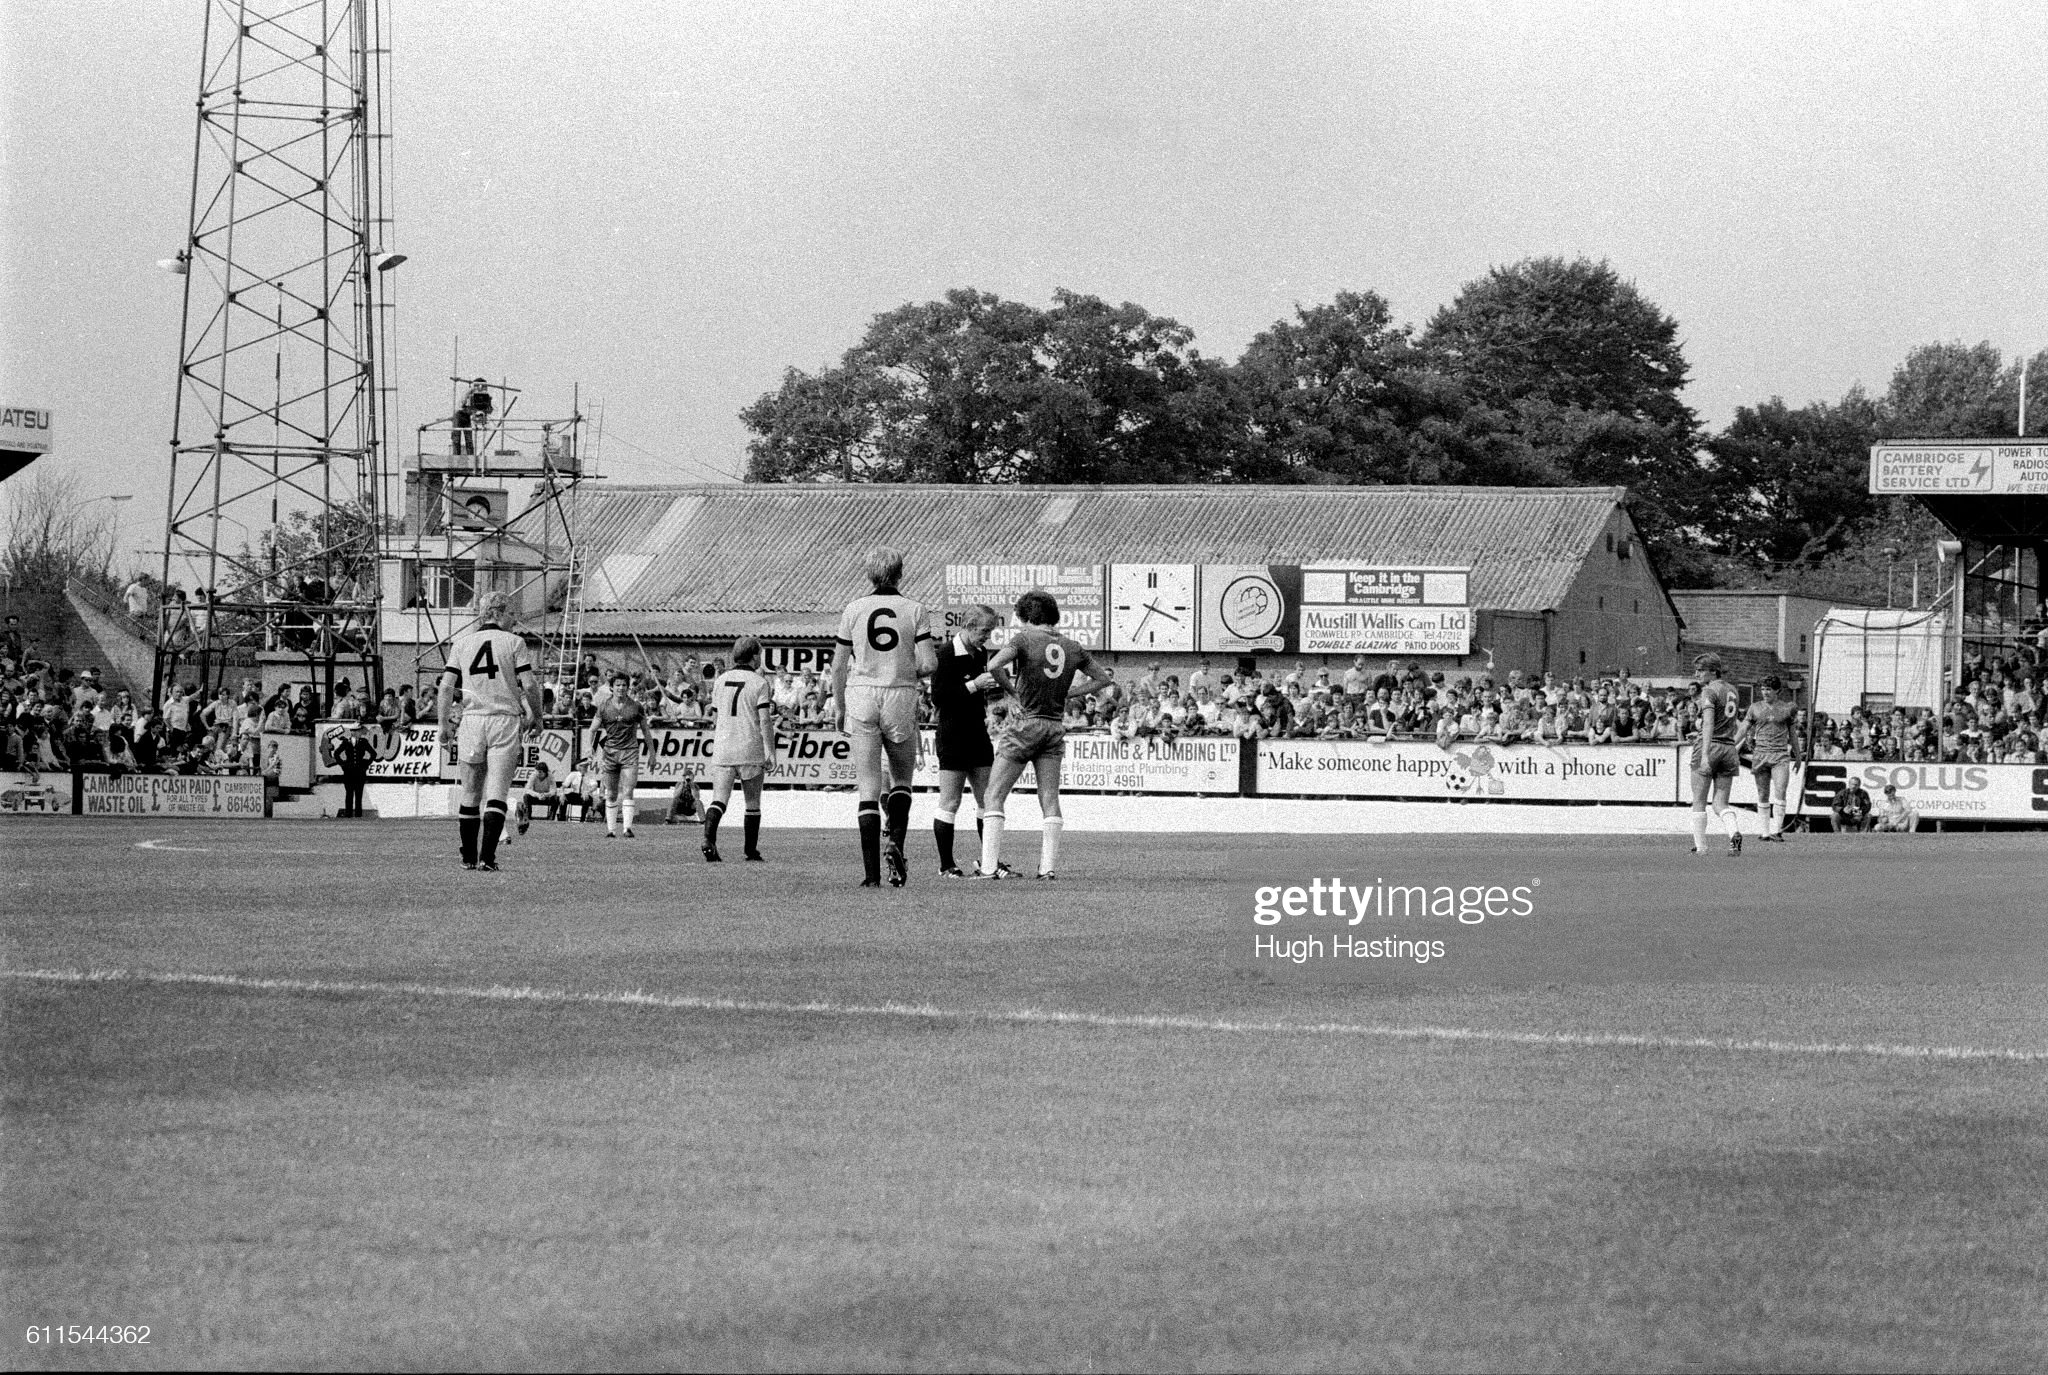 Soccer - Football League Division Two - Cambridge United v Chelsea, Abbey Stadium, Cambridge - 28th August 1982 : News Photo